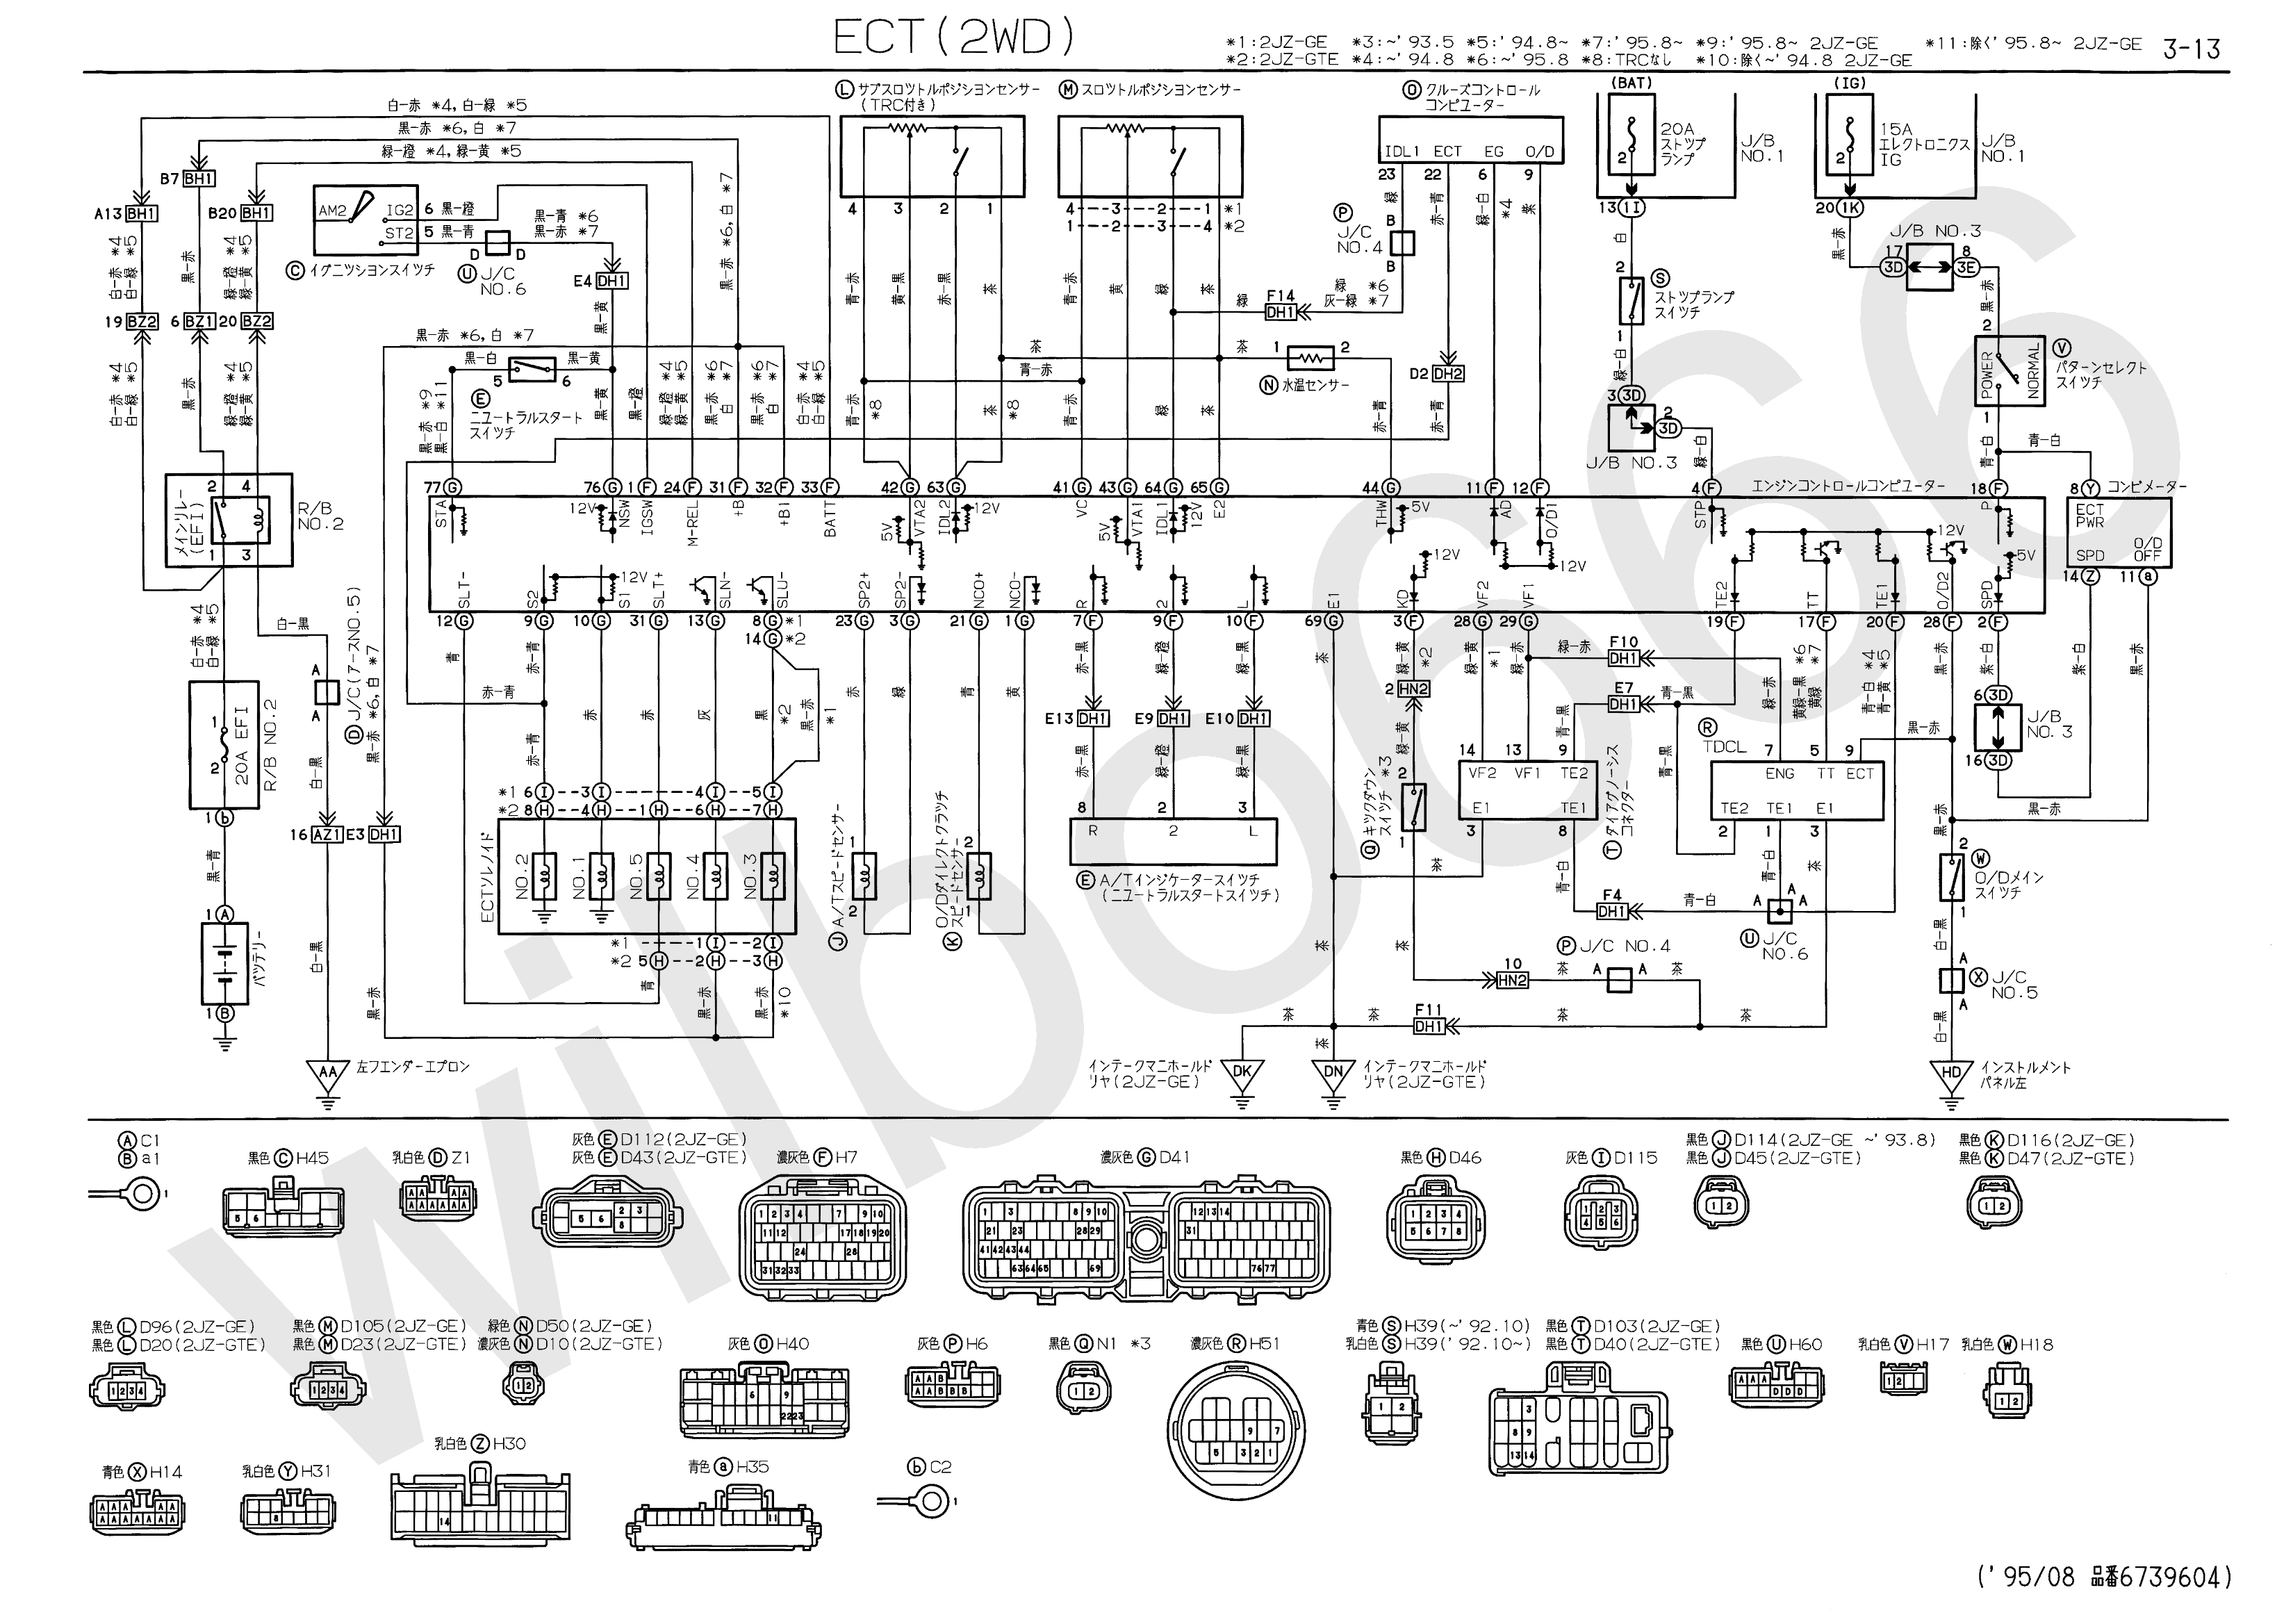 2JZ GTE 20JZS147 20Aristo 20Engine 20Wiring on 2008 toyota tacoma fuse box diagram